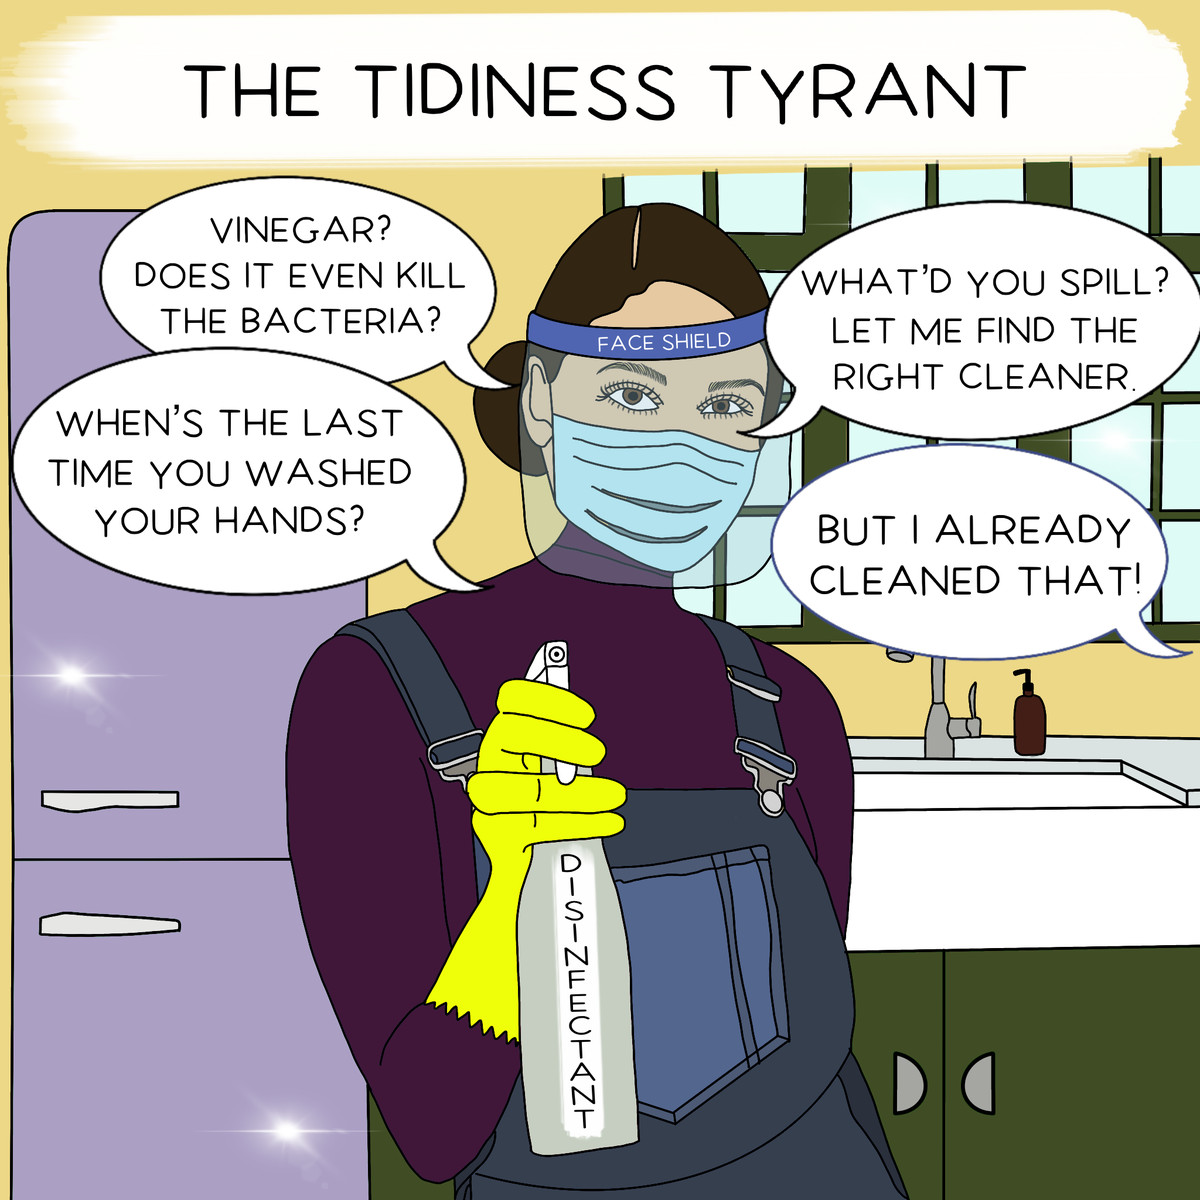 """""""The Tidiness Tyrant"""" wears a mask and face shield and rubber gloves while holding a bottle of disinfectant, saying """"When's the last time you washed your hands?"""""""